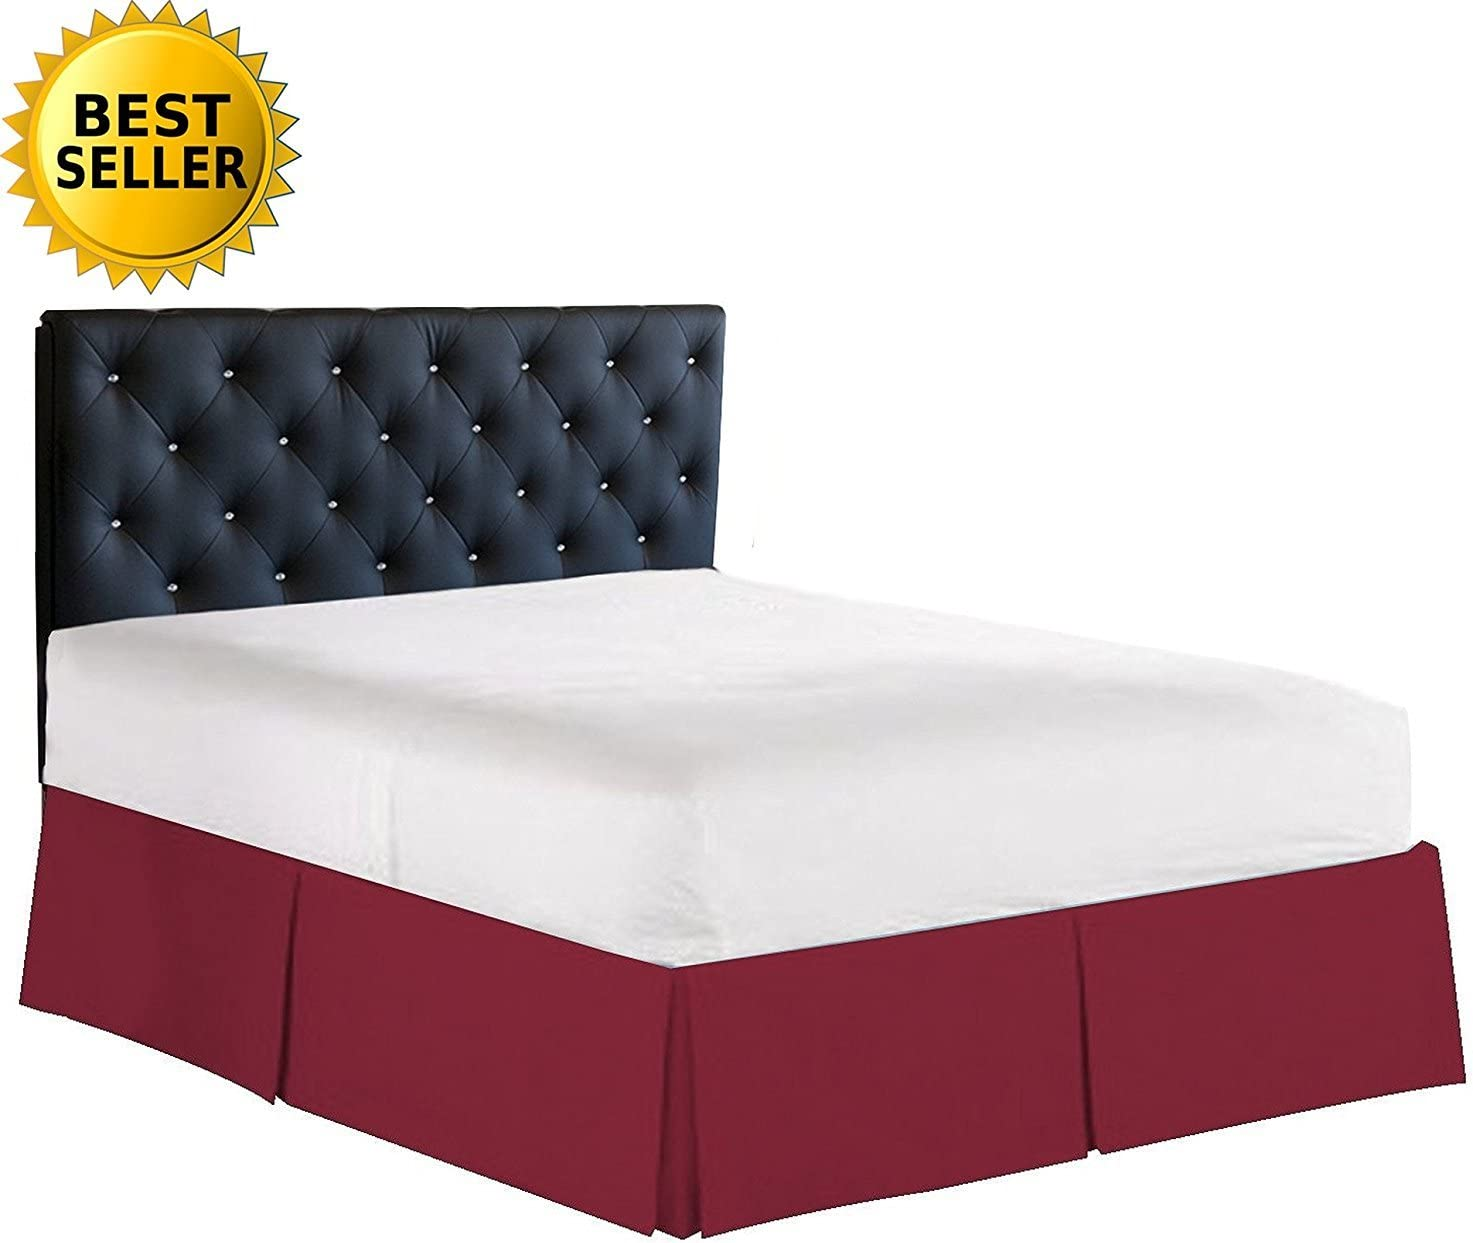 Elegant Comfort 1500 Thread Count Wrinkle /& Fade Resistant Egyptian Quality Bed Skirt//Dust Ruffle Burgundy Pleated Tailored 14inch Drop Twin